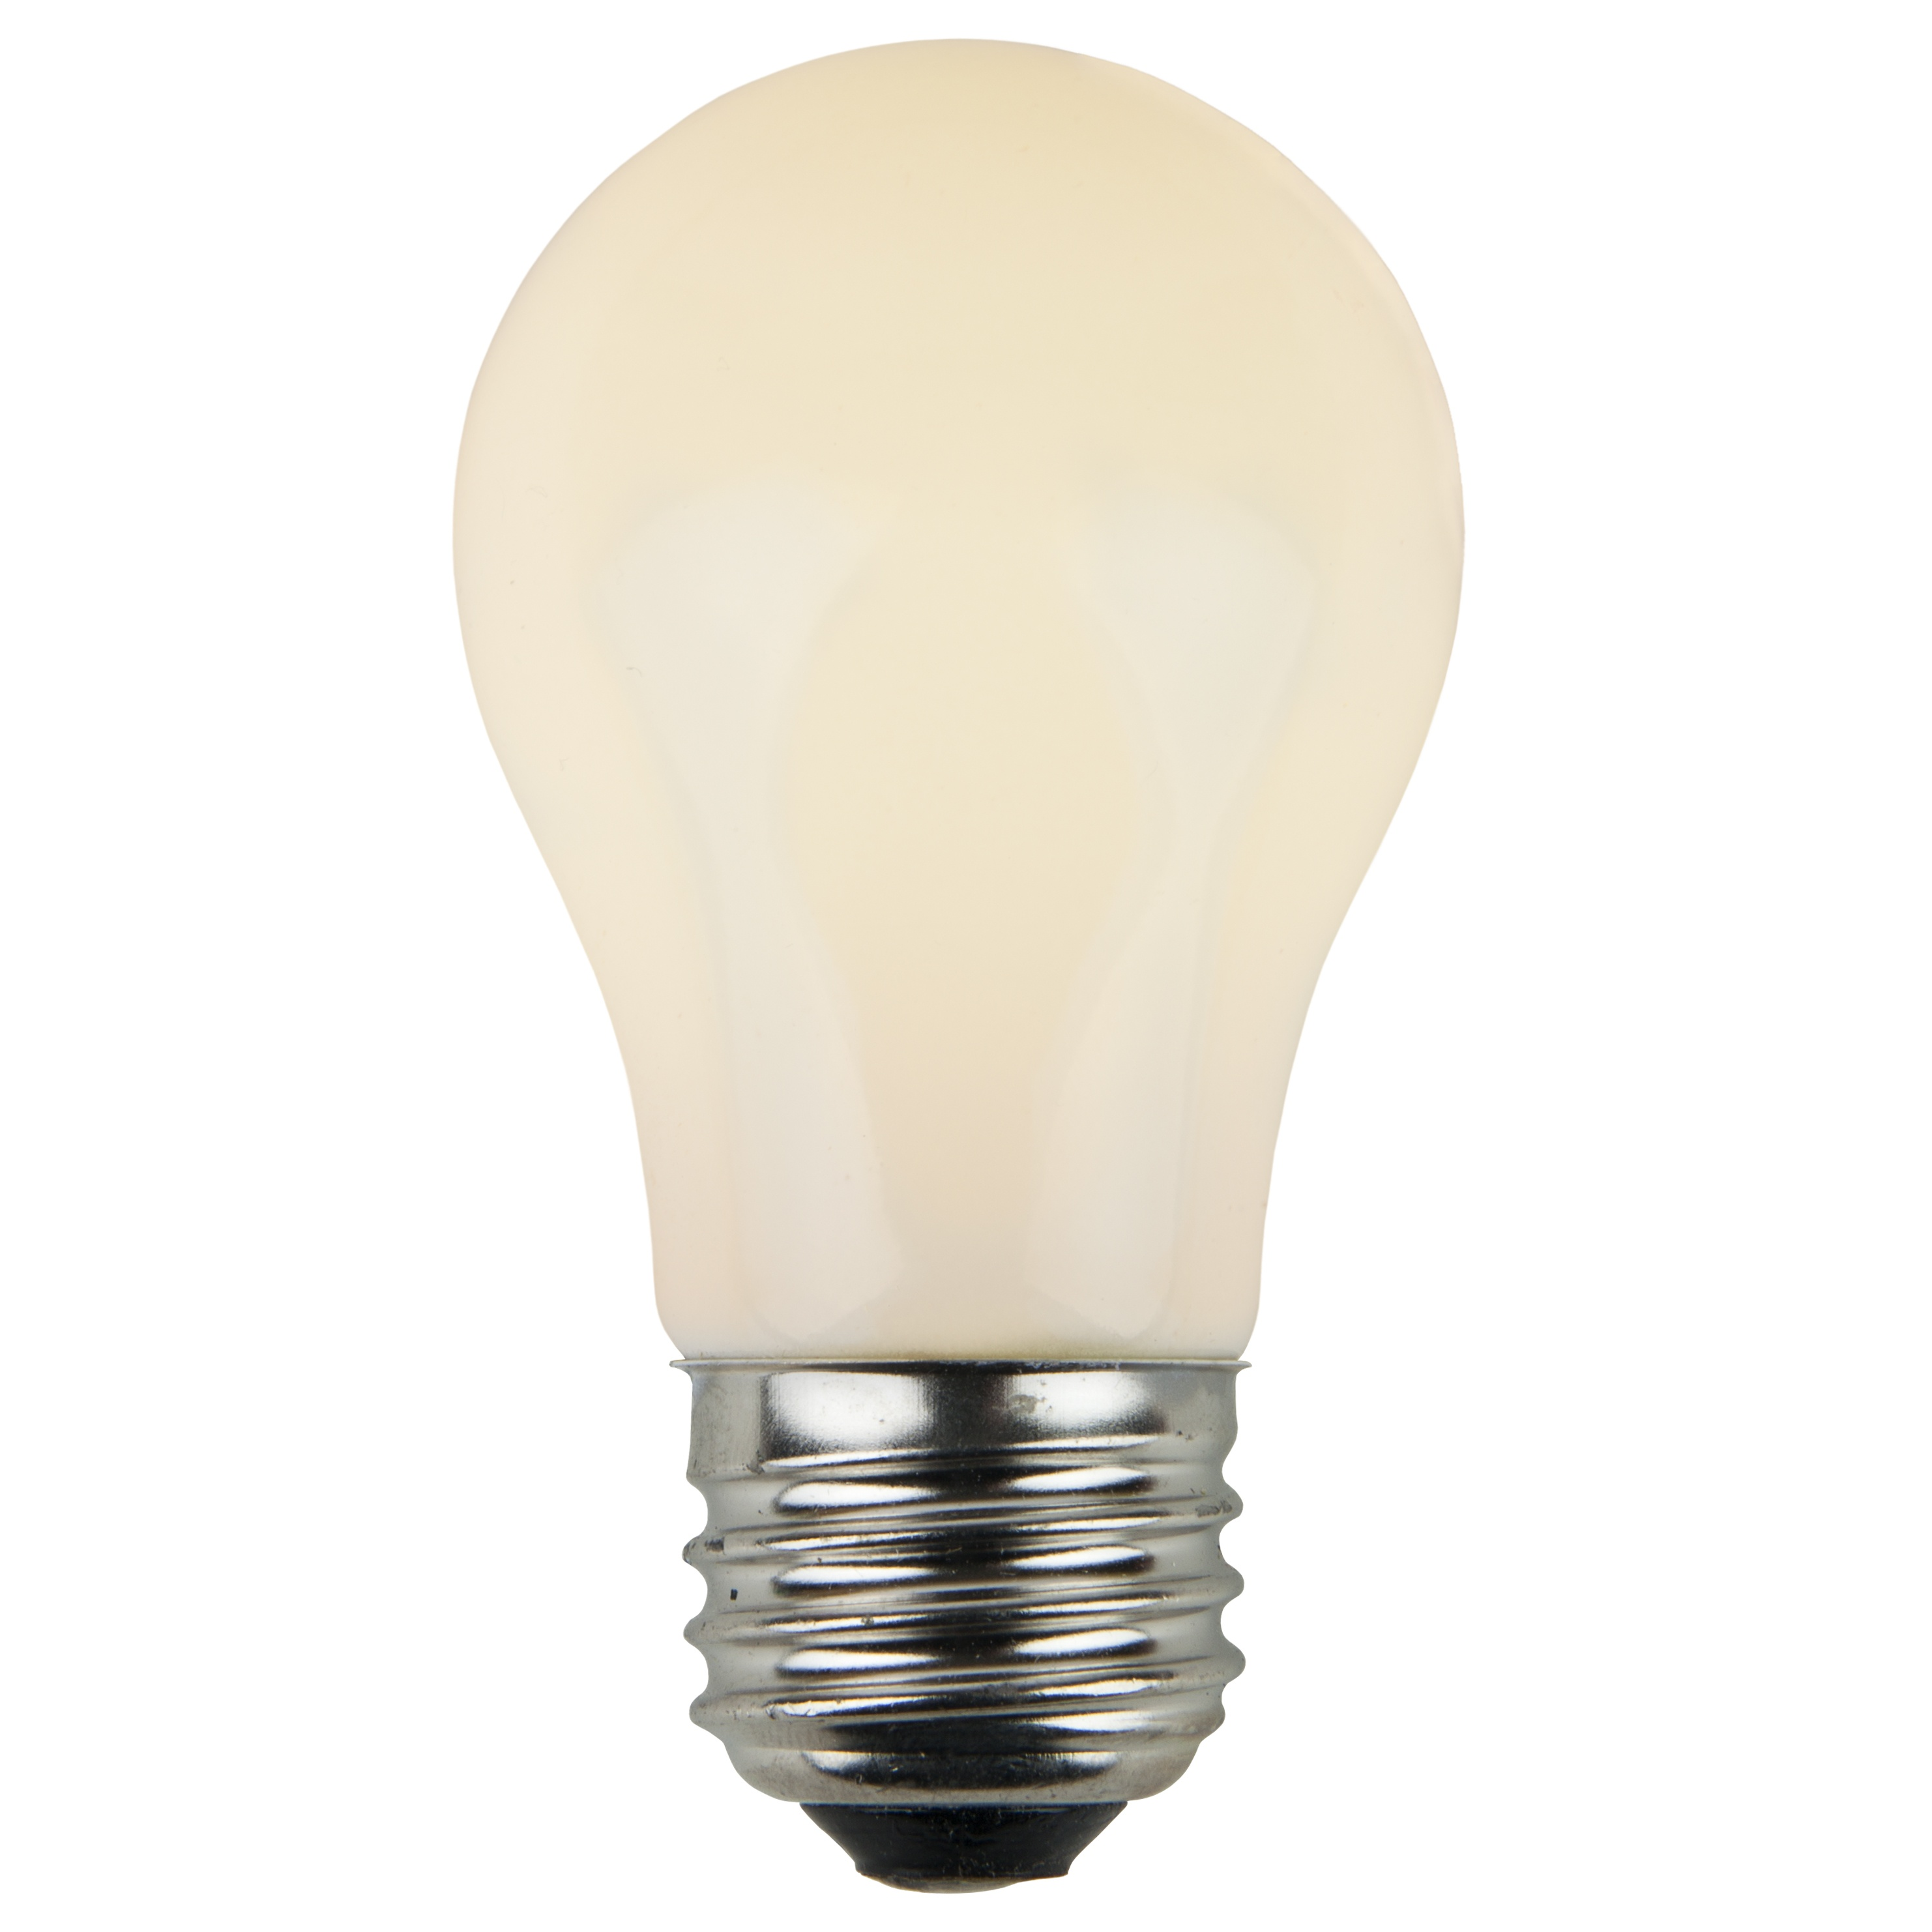 A15 White Opaque Incandescent Bulb